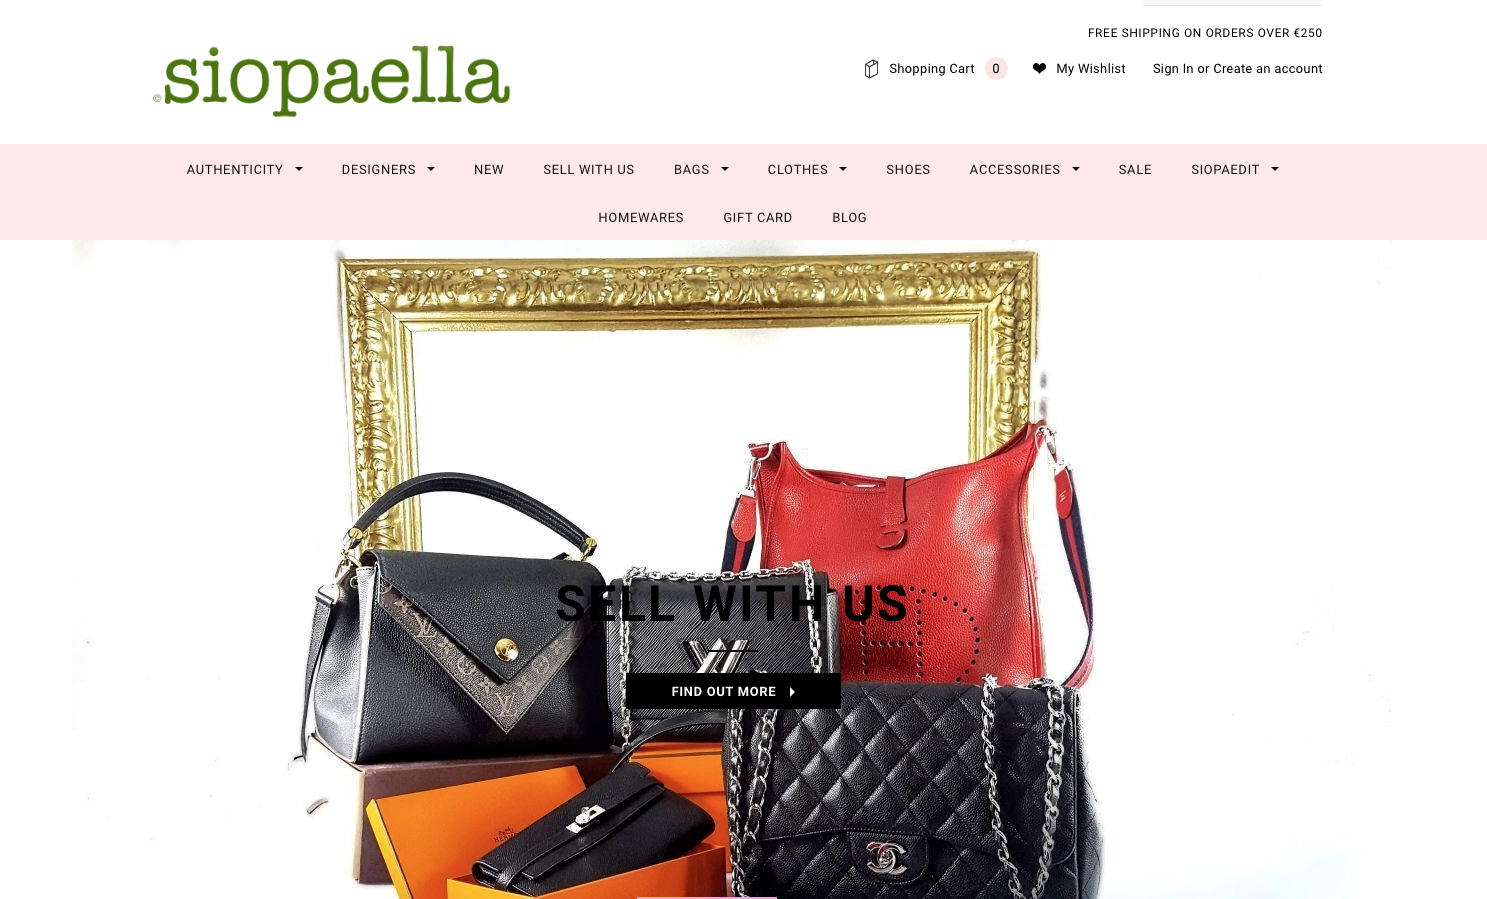 7d6ec618710d 5 THINGS YOU MAY NOT KNOW ABOUT THE BIRKIN BAG – Siopaella Designer ...